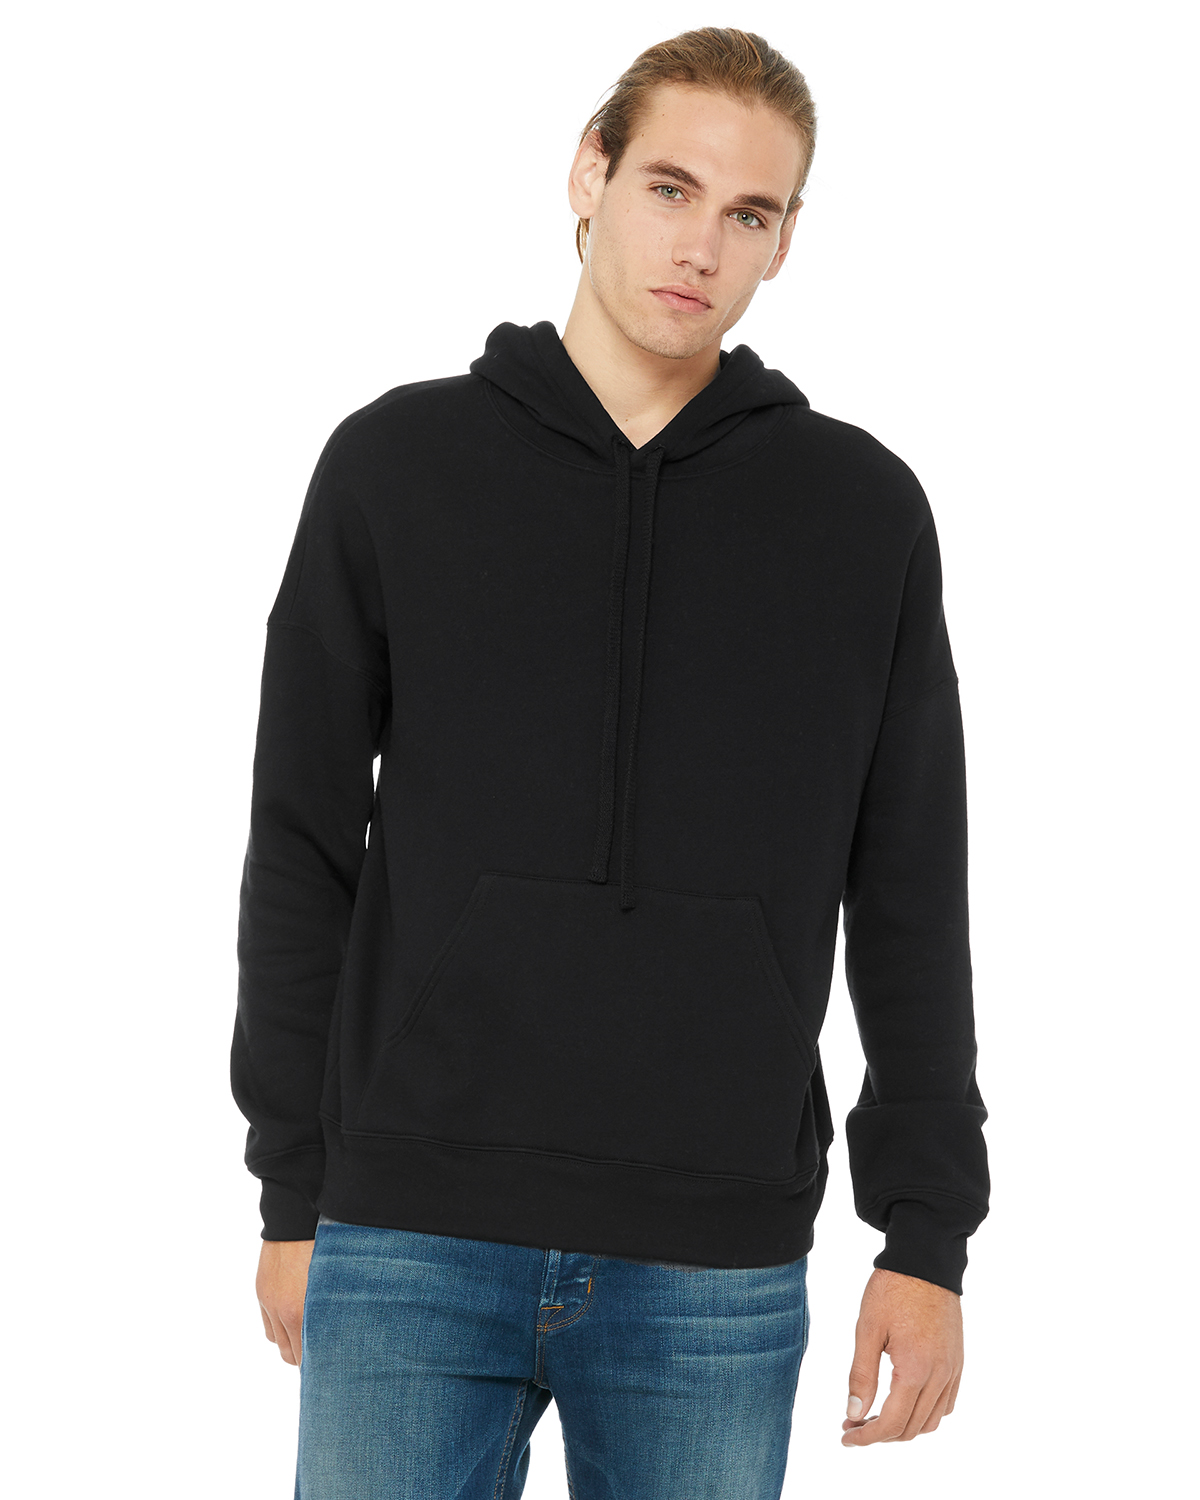 Bella+Canvas 3729 - Unisex Sponge Fleece Pullover Sweatshirt